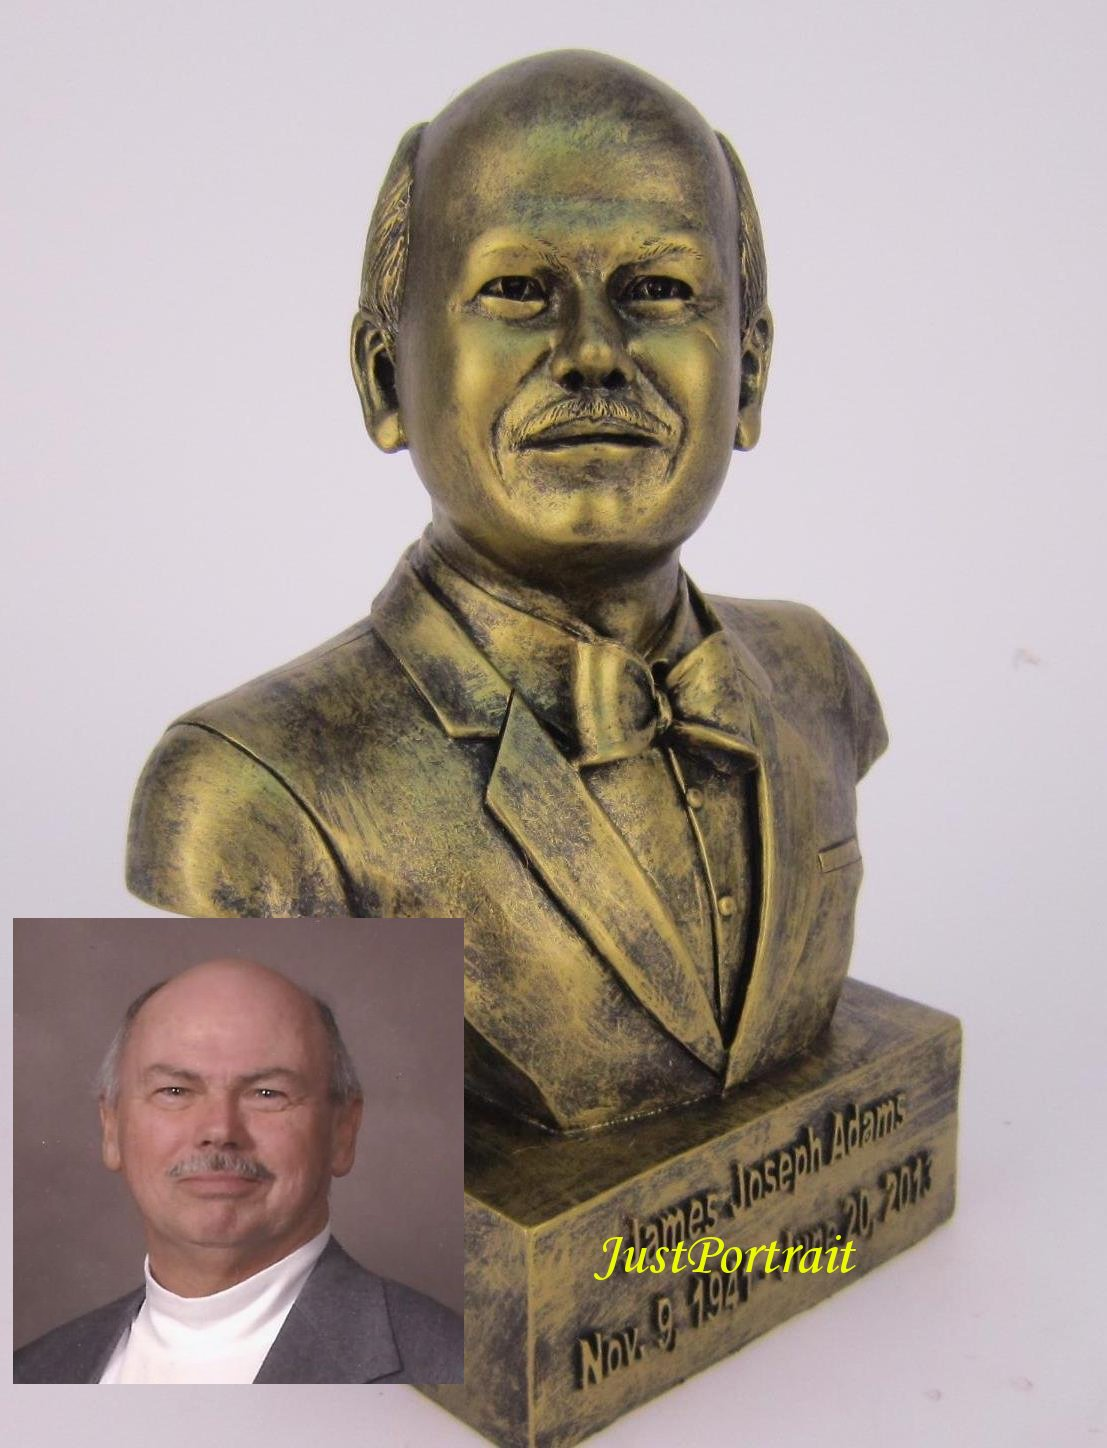 Custom Bronze Bust, Custom Bust Sculpture, Portrait Sculpture Commissions, in resin and marble, bronze finish